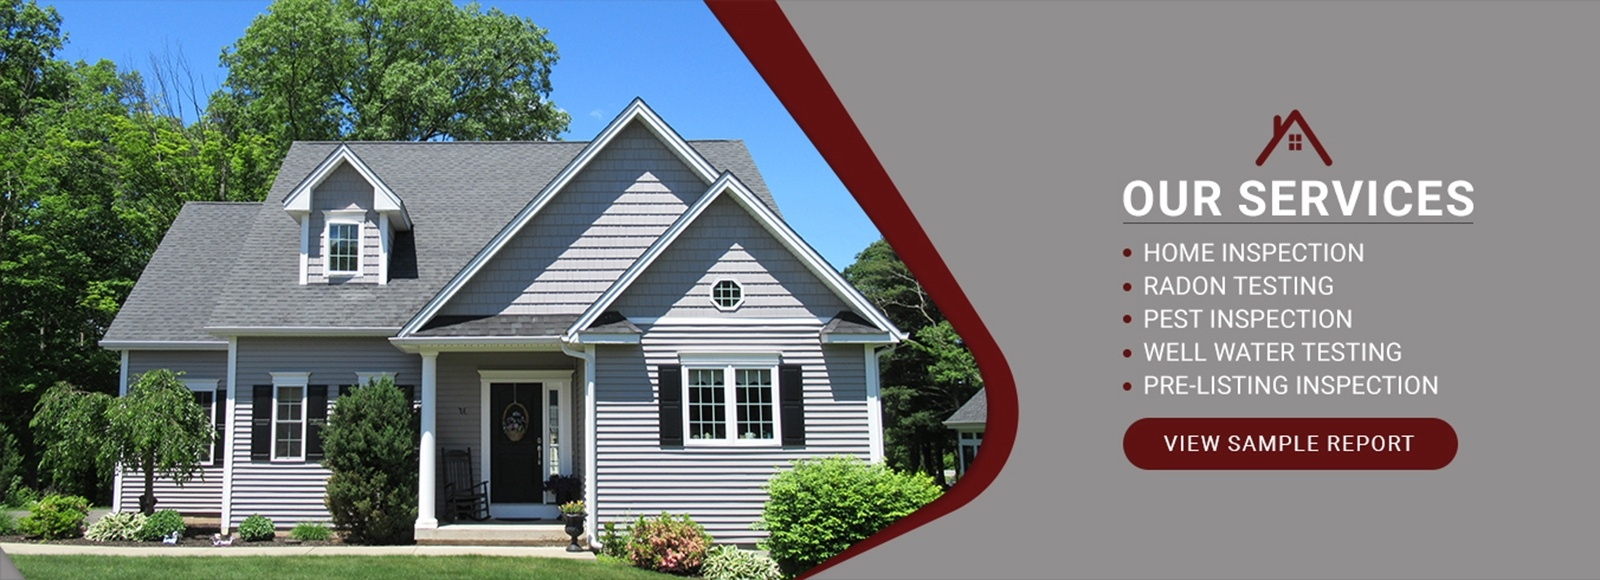 Home Inspection Company Berlin CT